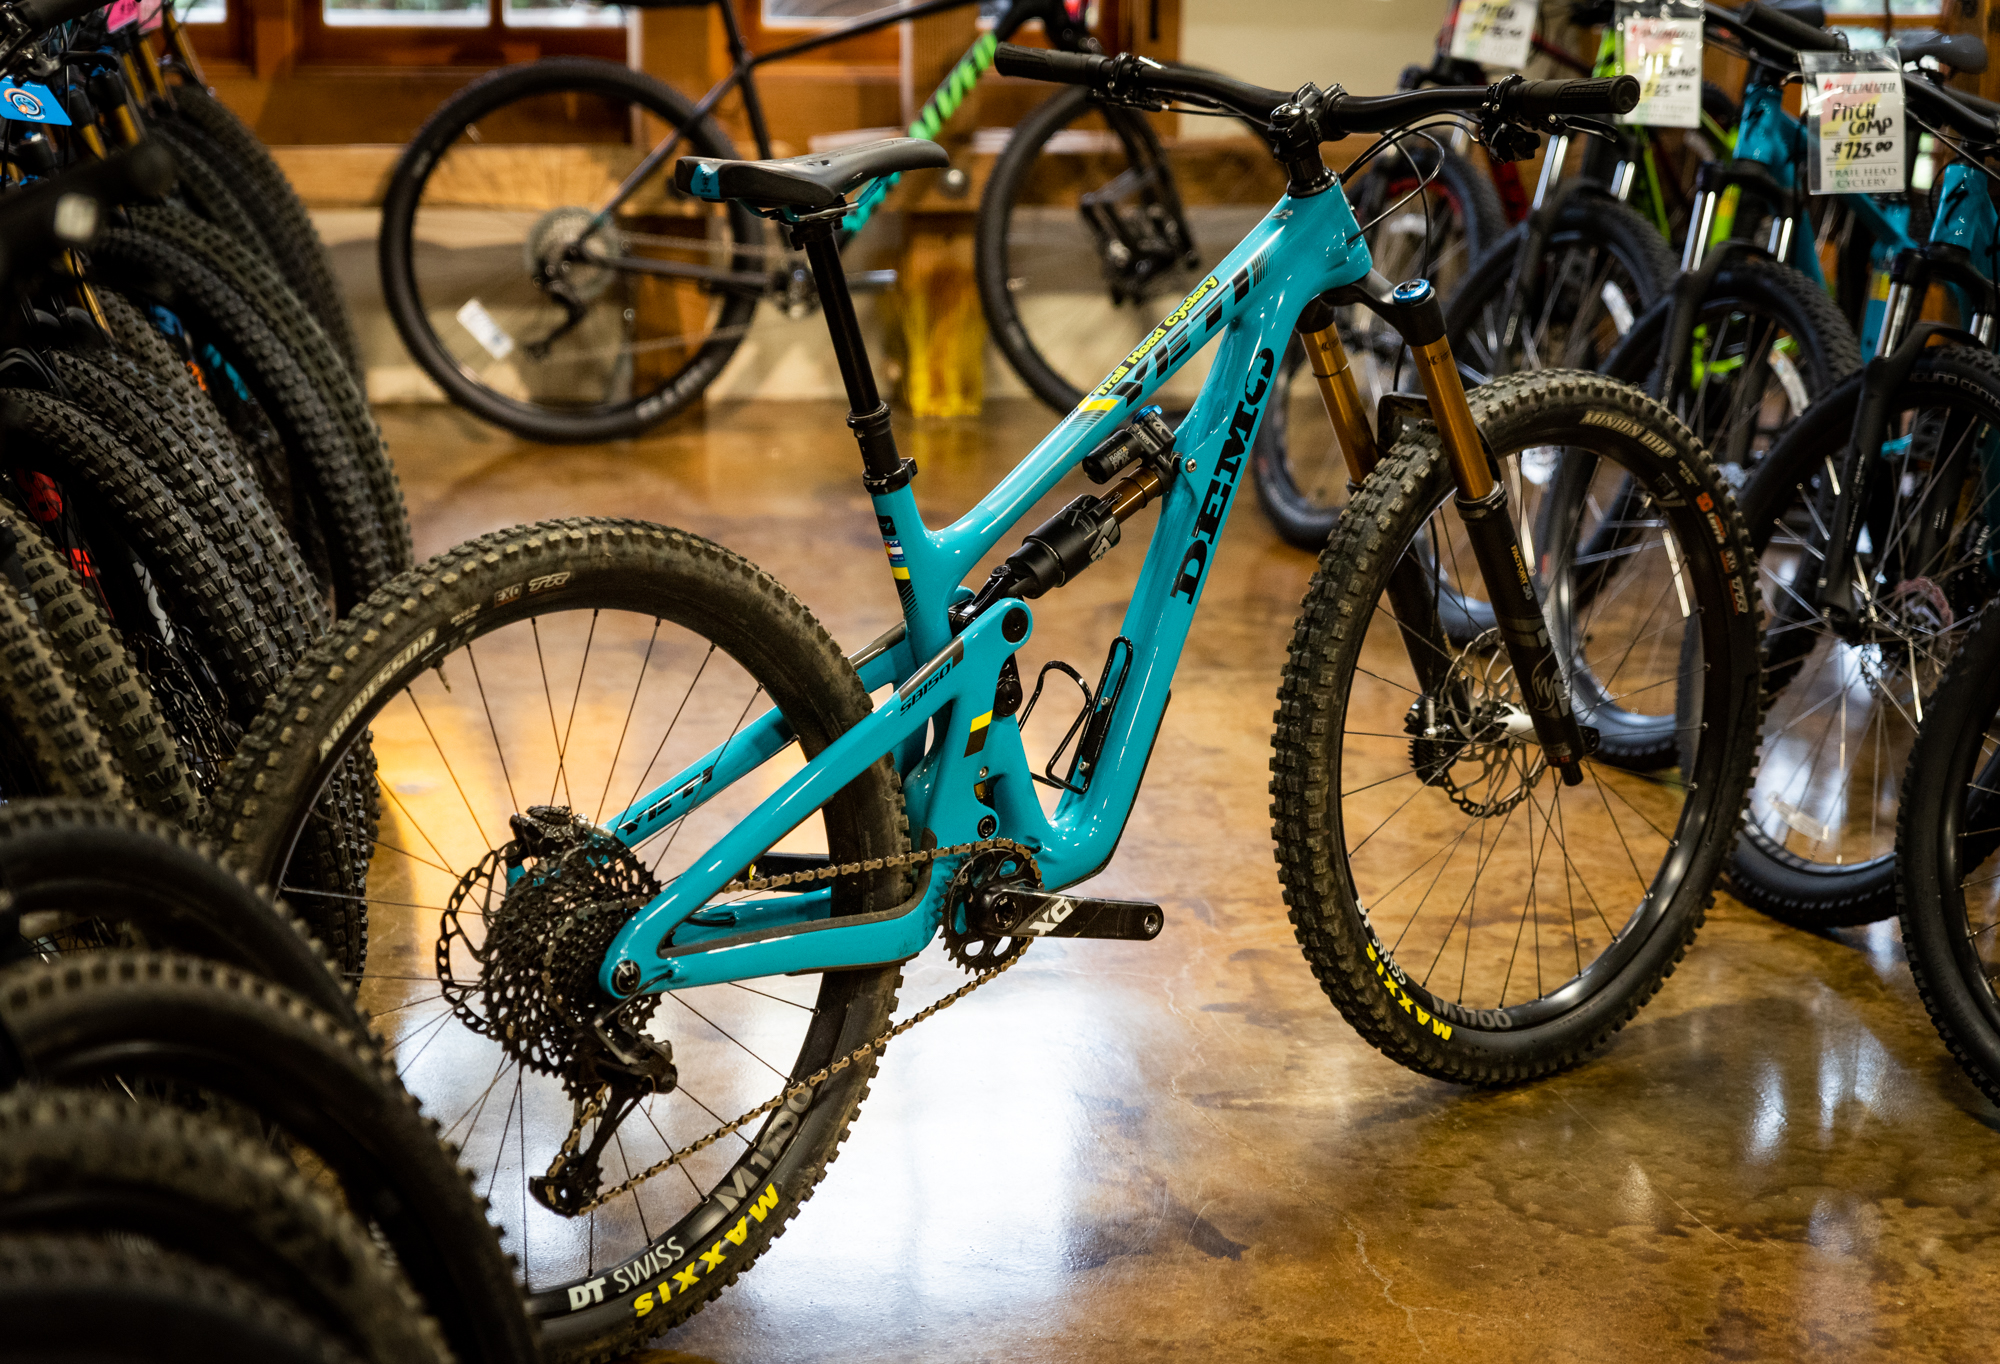 The Yeti SB150, one of the many high-end rentals we offer.